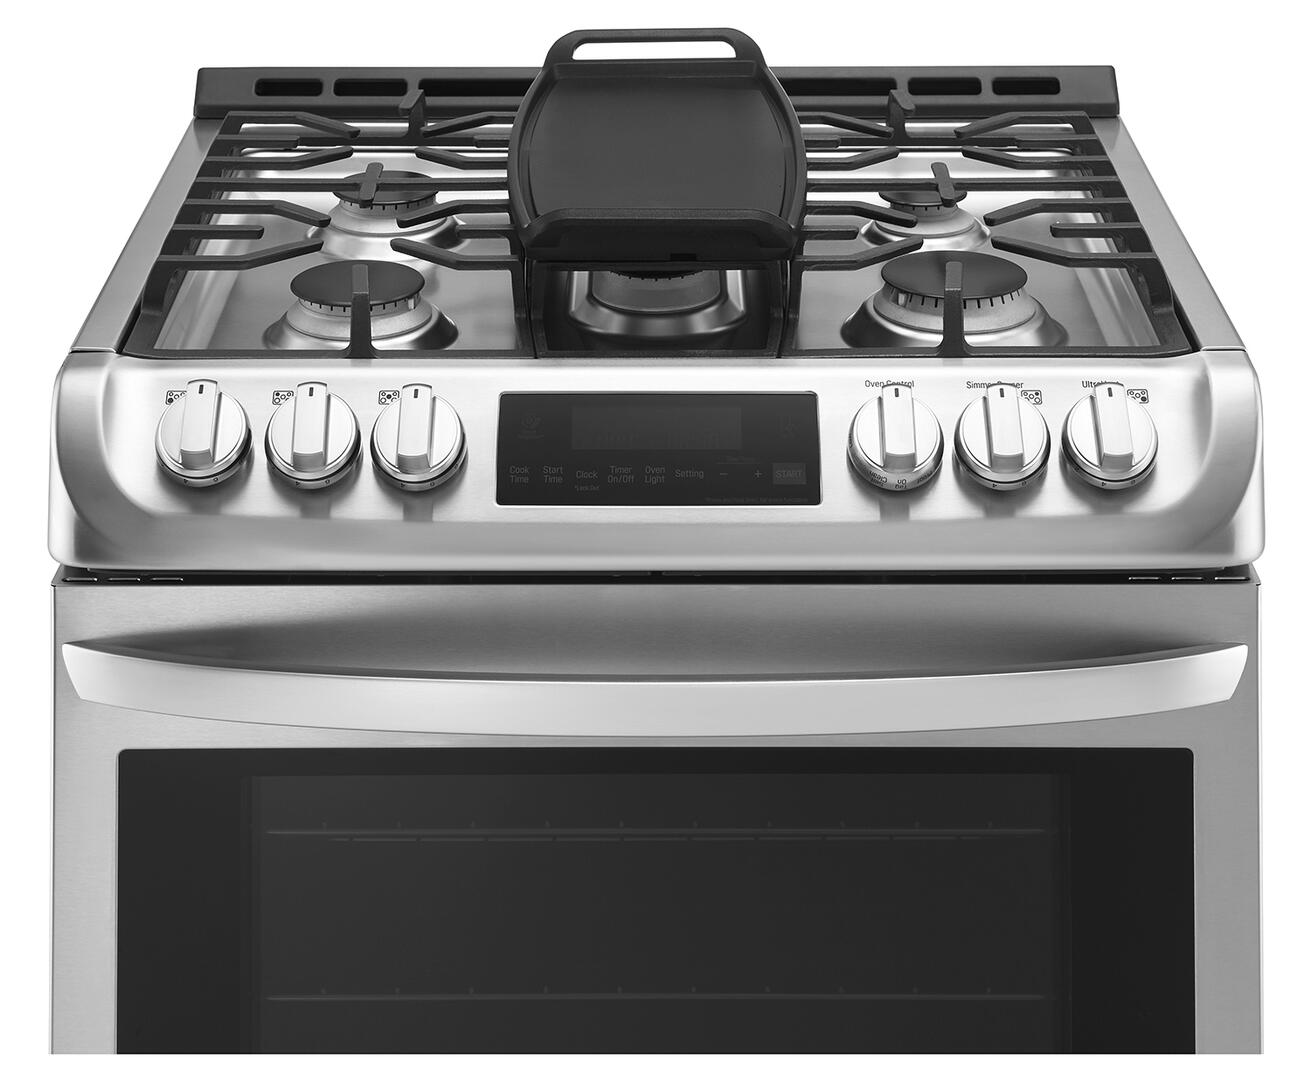 Kitchen gas stove top view -  Lg Alternate View Lg Cooktop With Griddle Lg Top